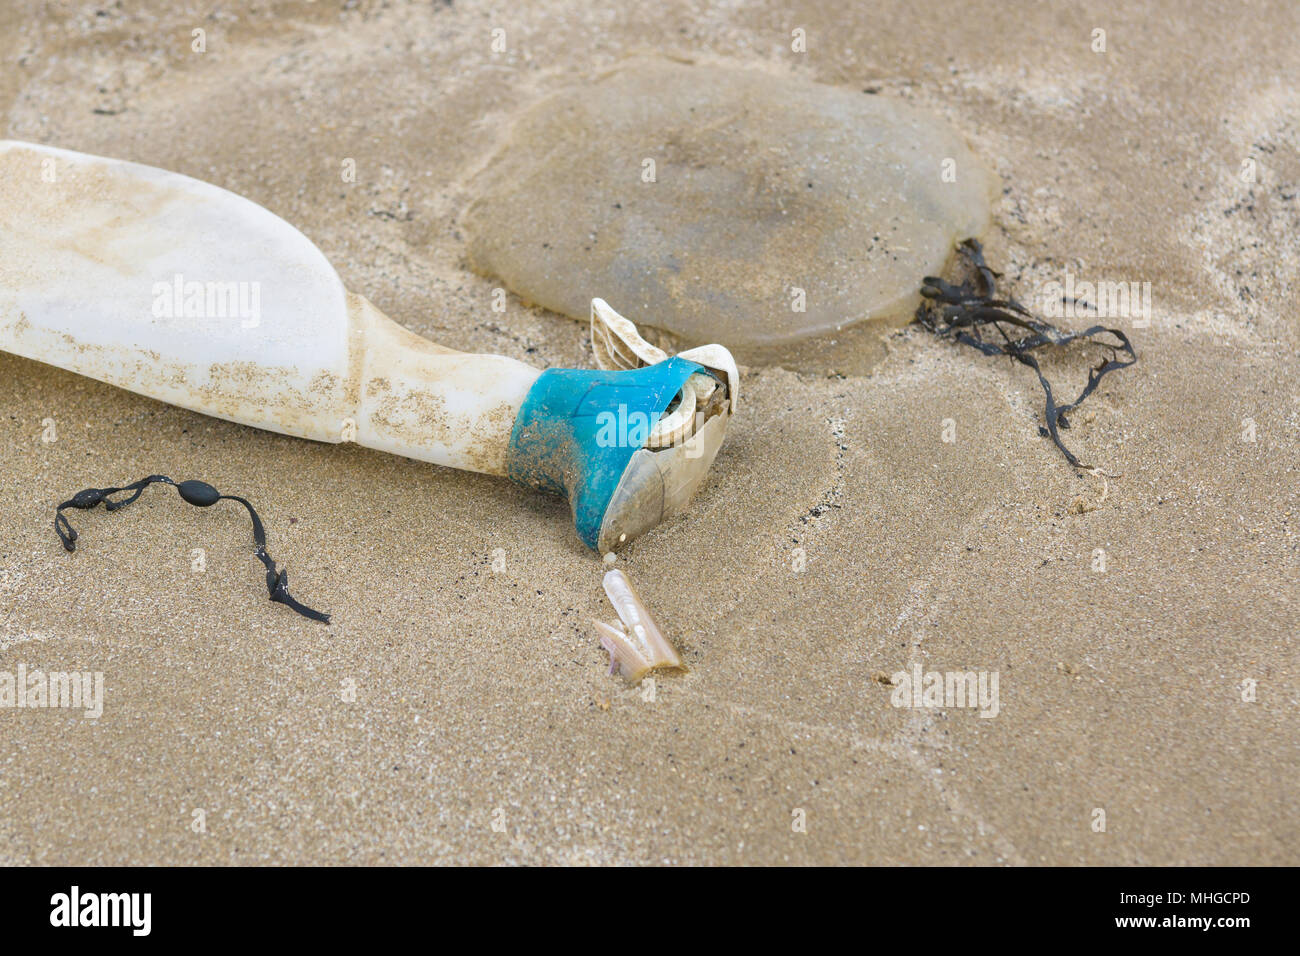 Plastic bottle lying next to a dead jelly fish washed up on a beach in the UK an example of the plastic pollution in the sea - Stock Image